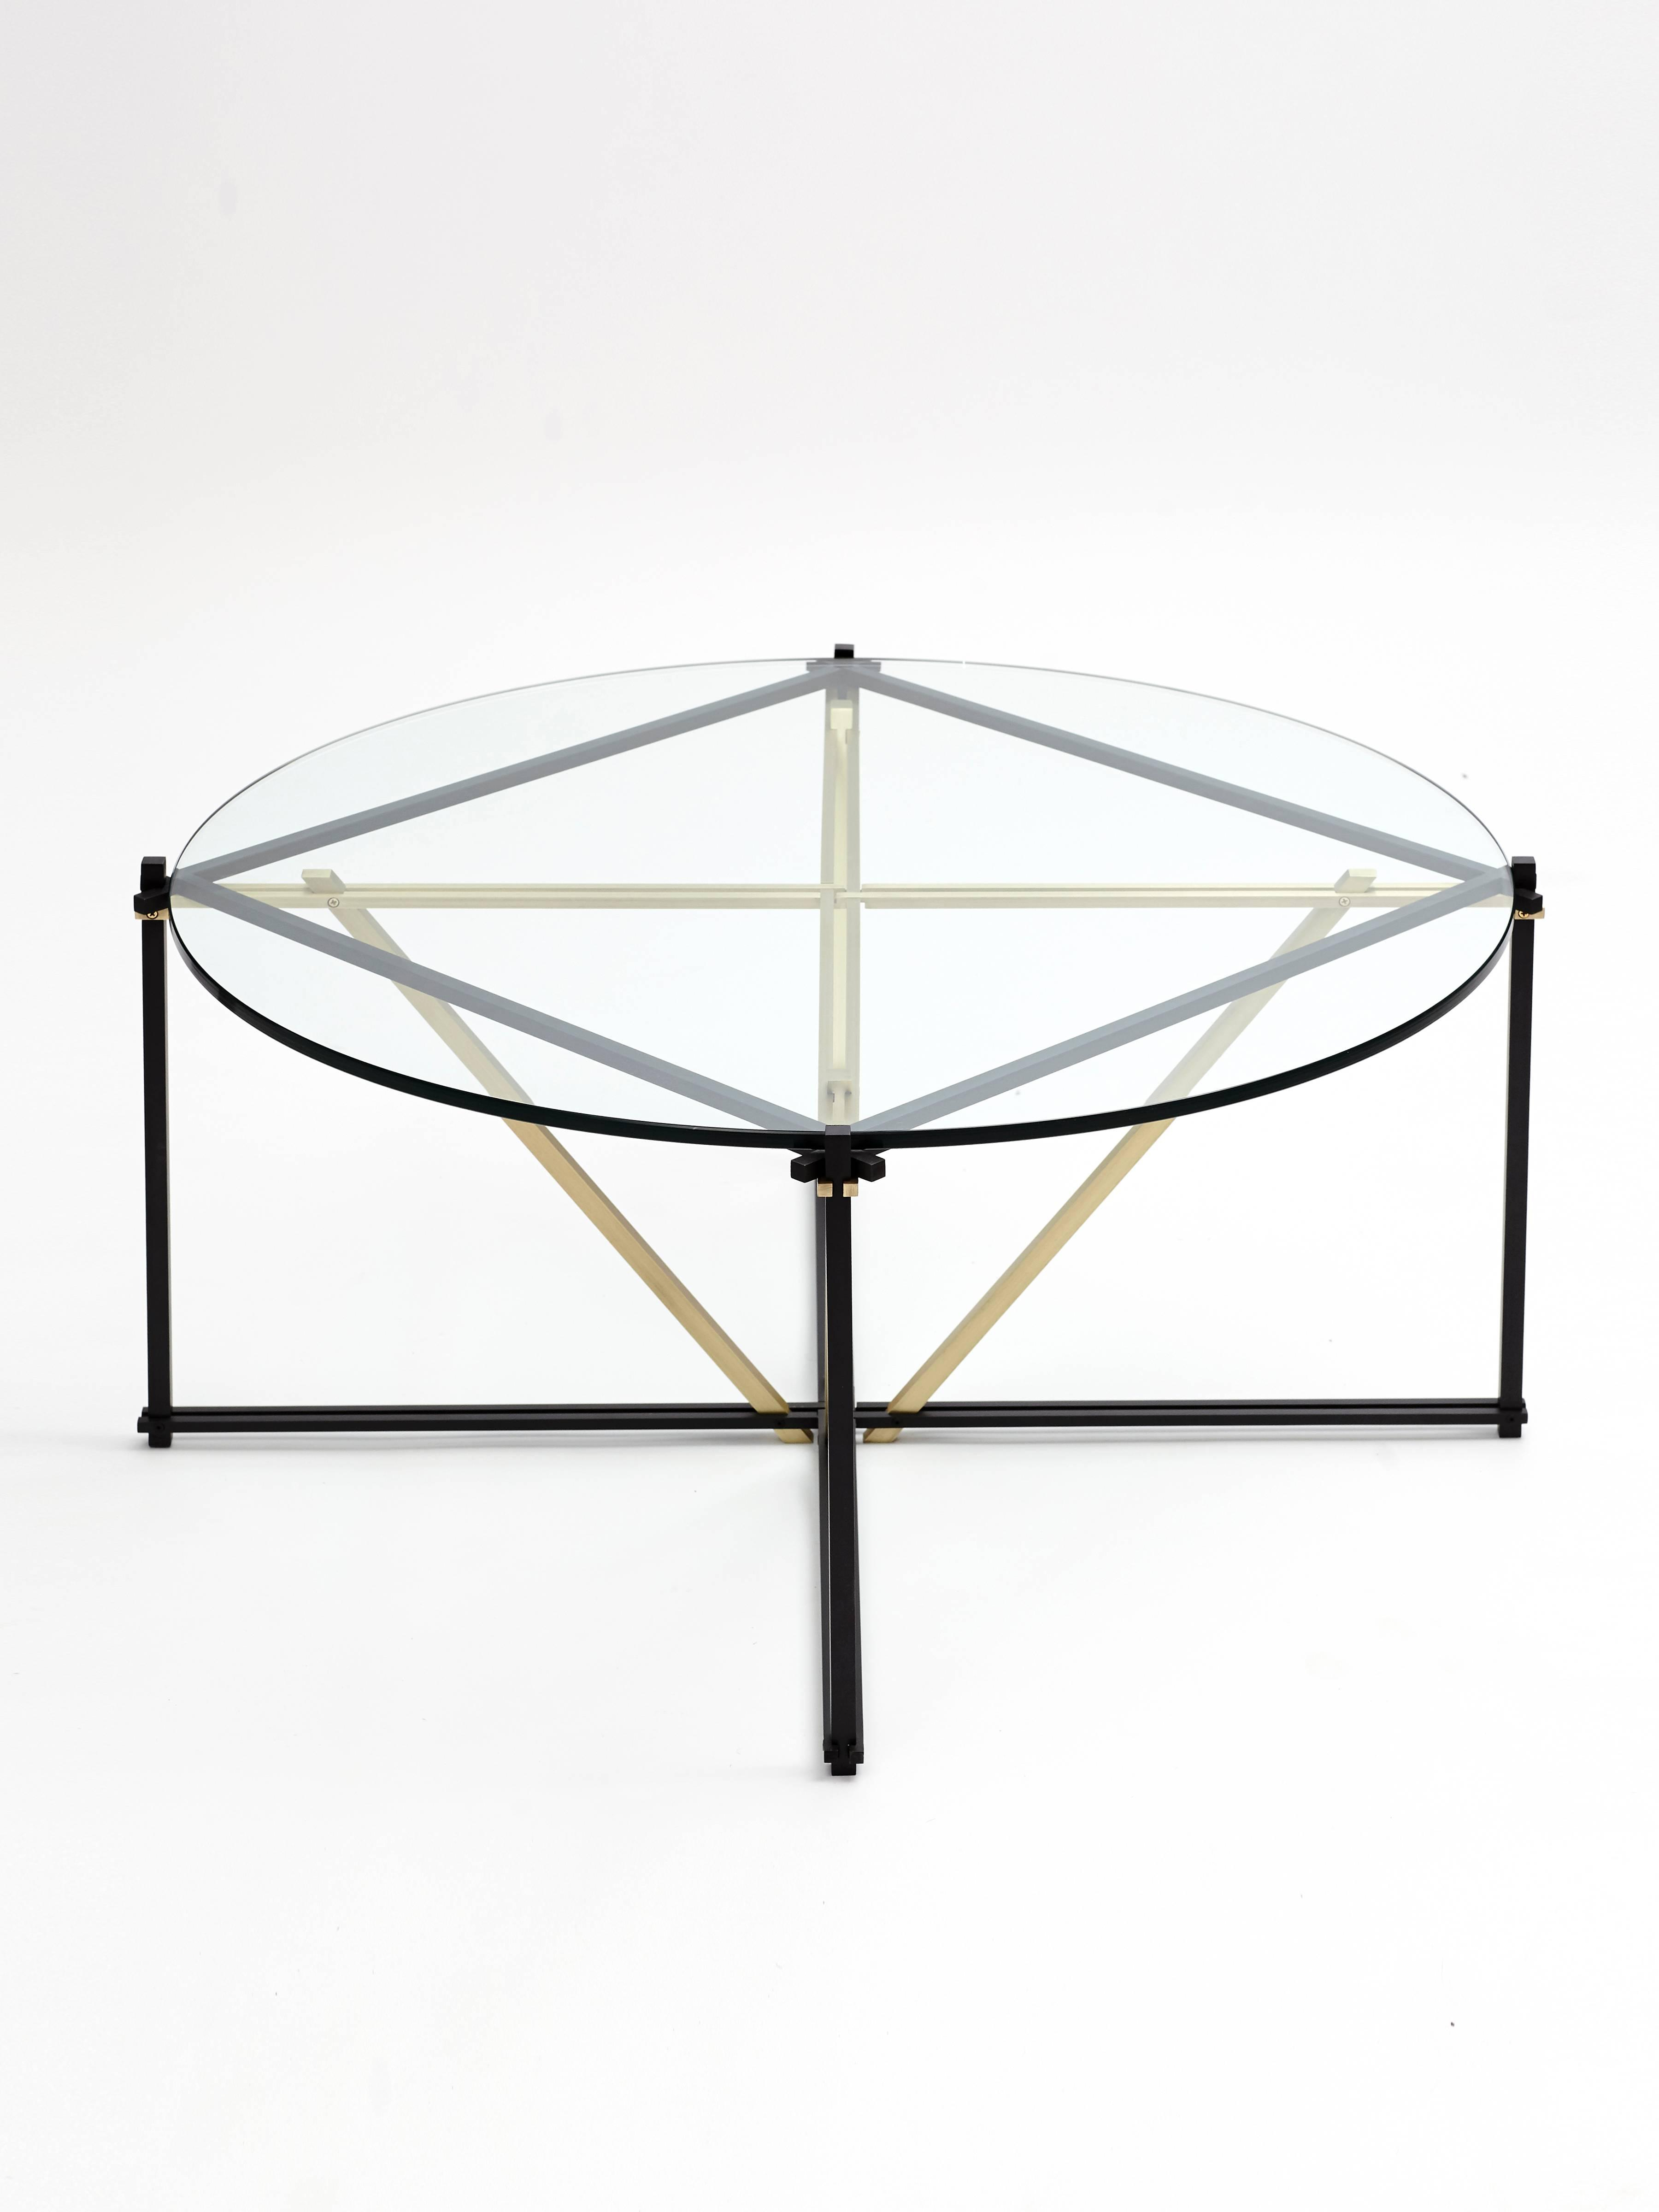 Trendy Tensegrity Coffee Table, Black And Satin Brass With Clear Glass For With Regard To Intertwine Triangle Marble Coffee Tables (View 19 of 20)